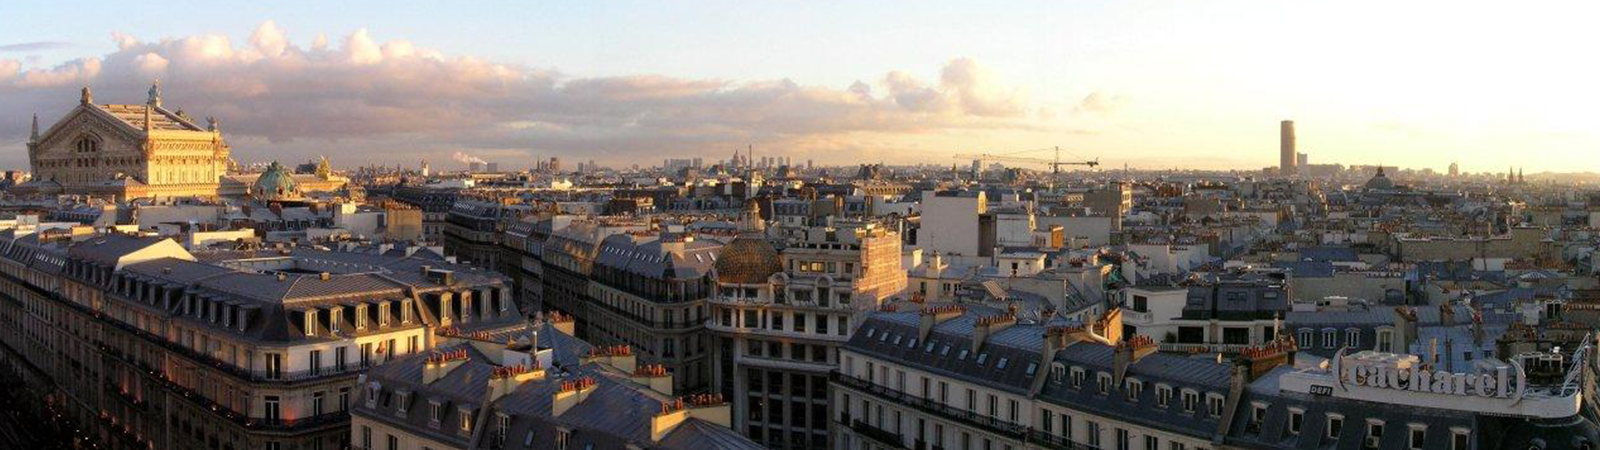 The Paris skyline without skyscrapers